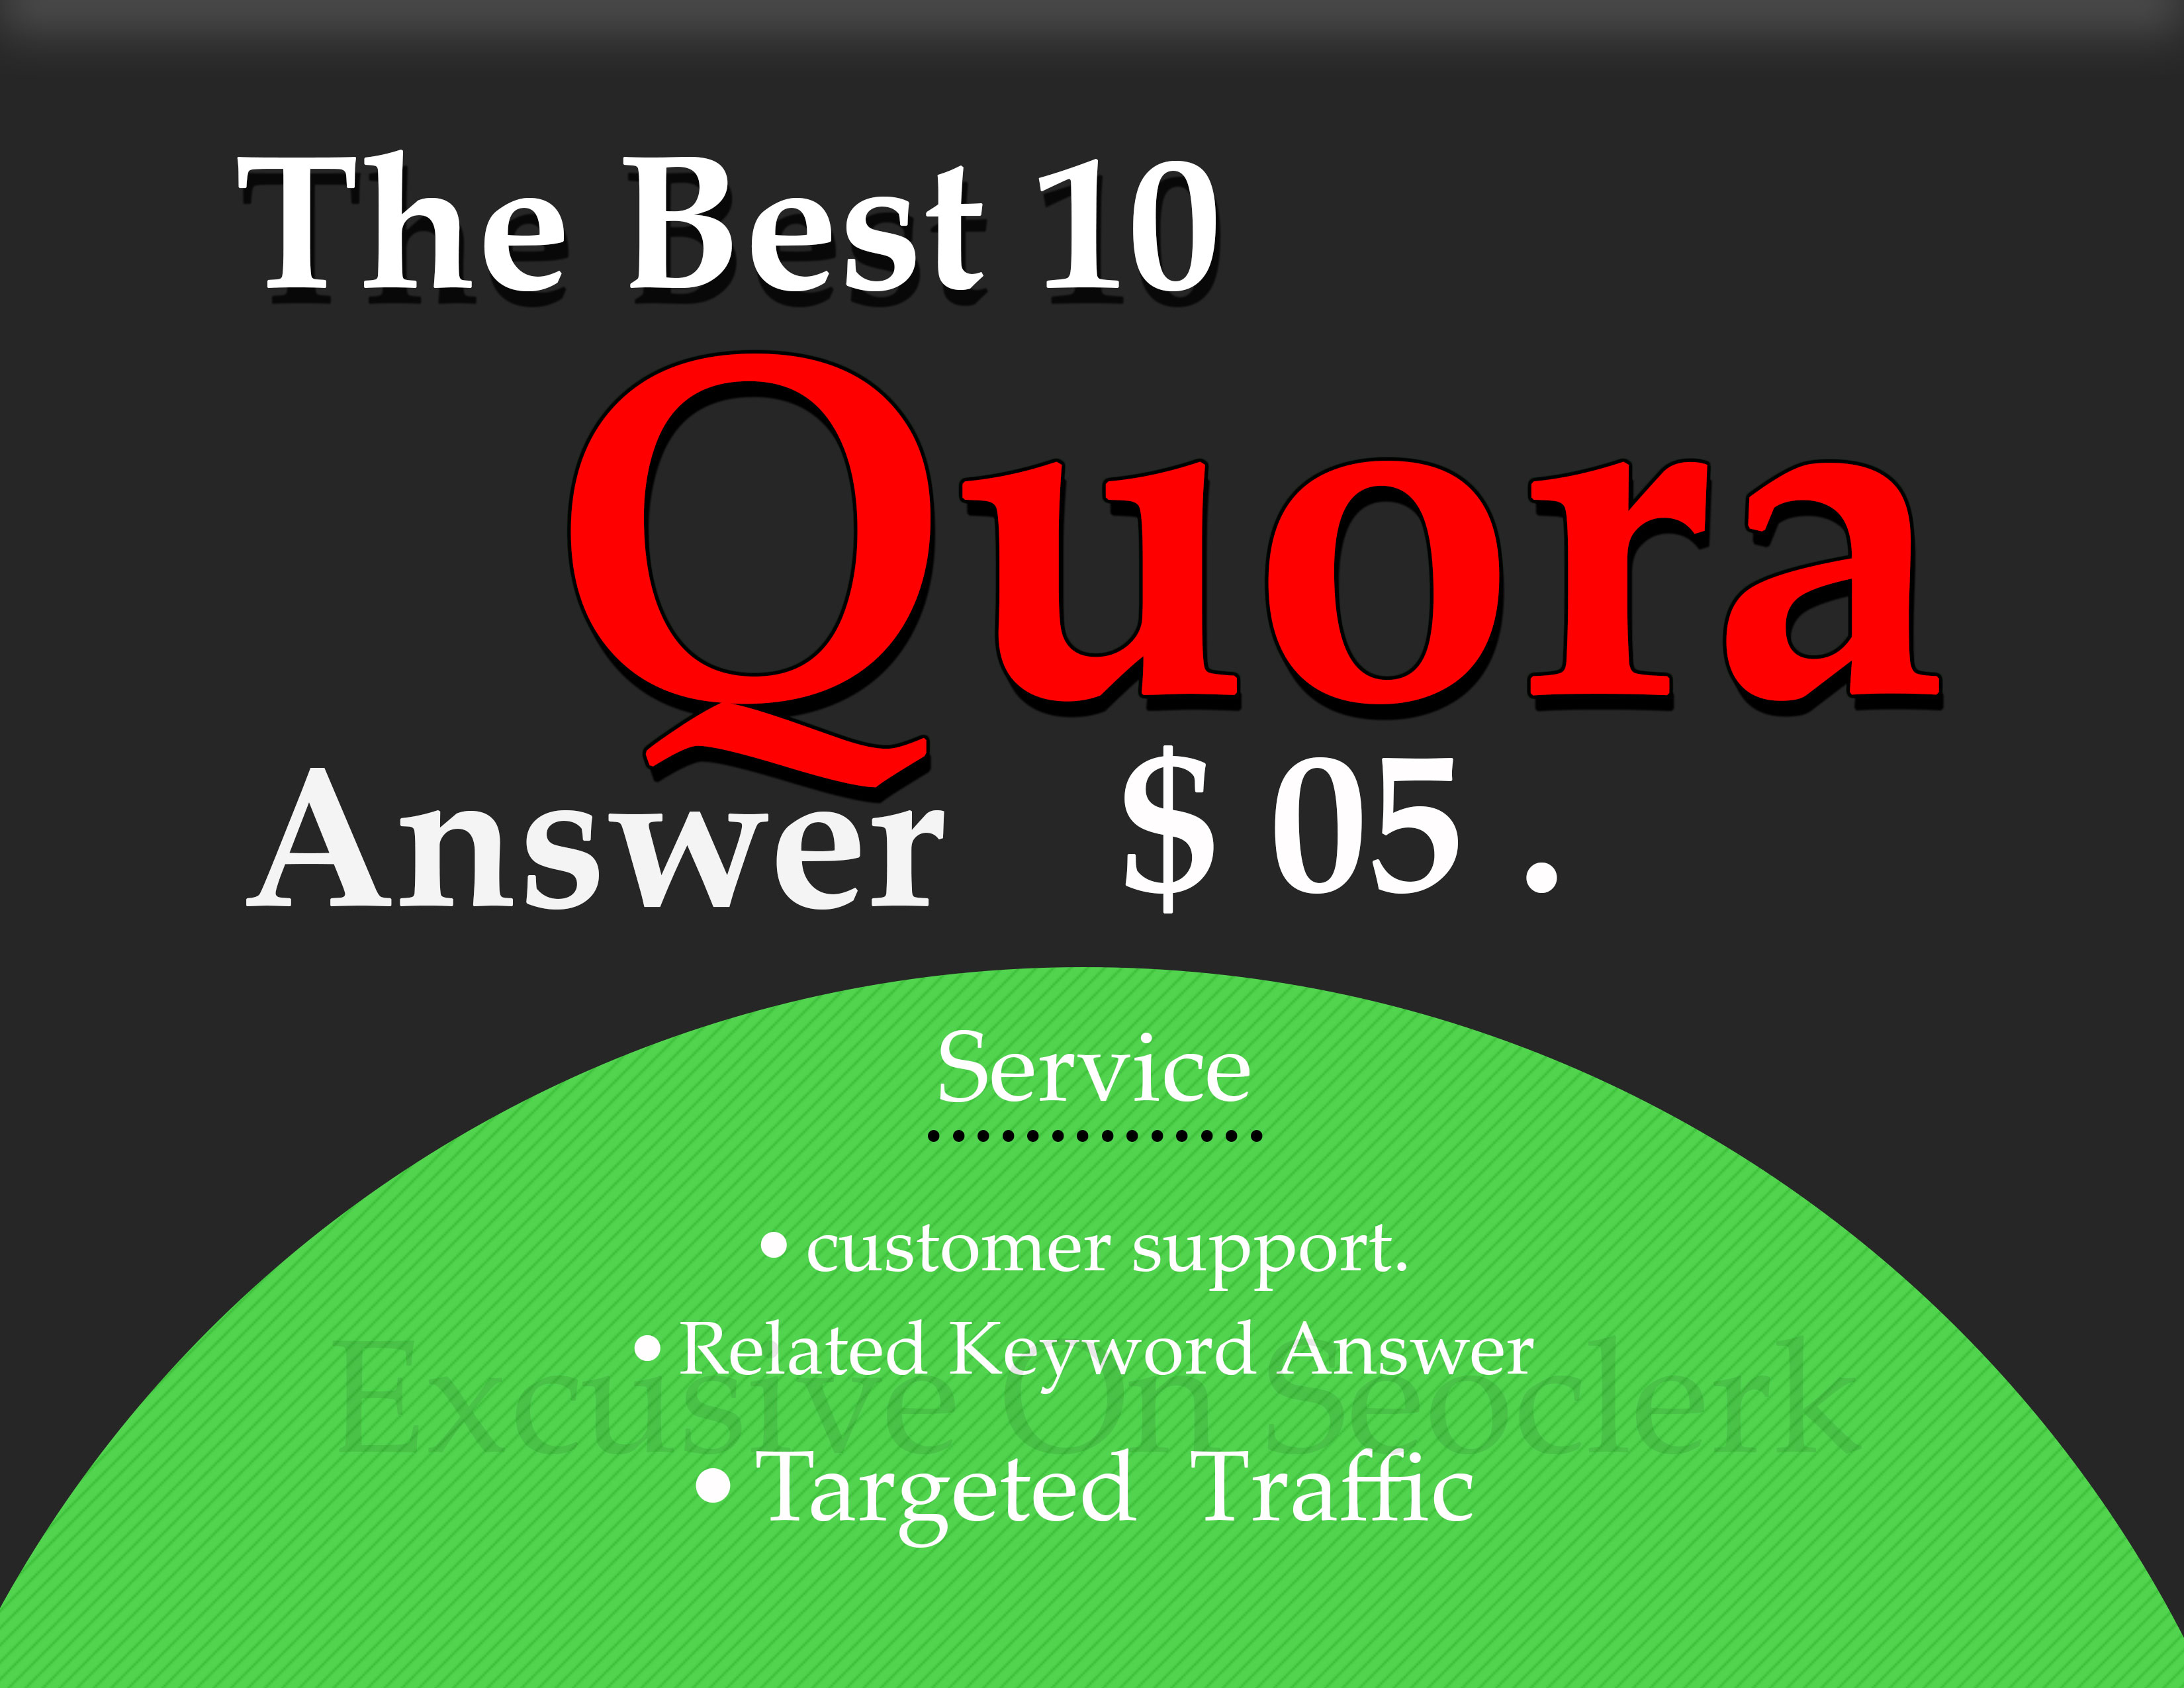 DO 10 HG Quora Answer with promote Your Website/Business + upvote